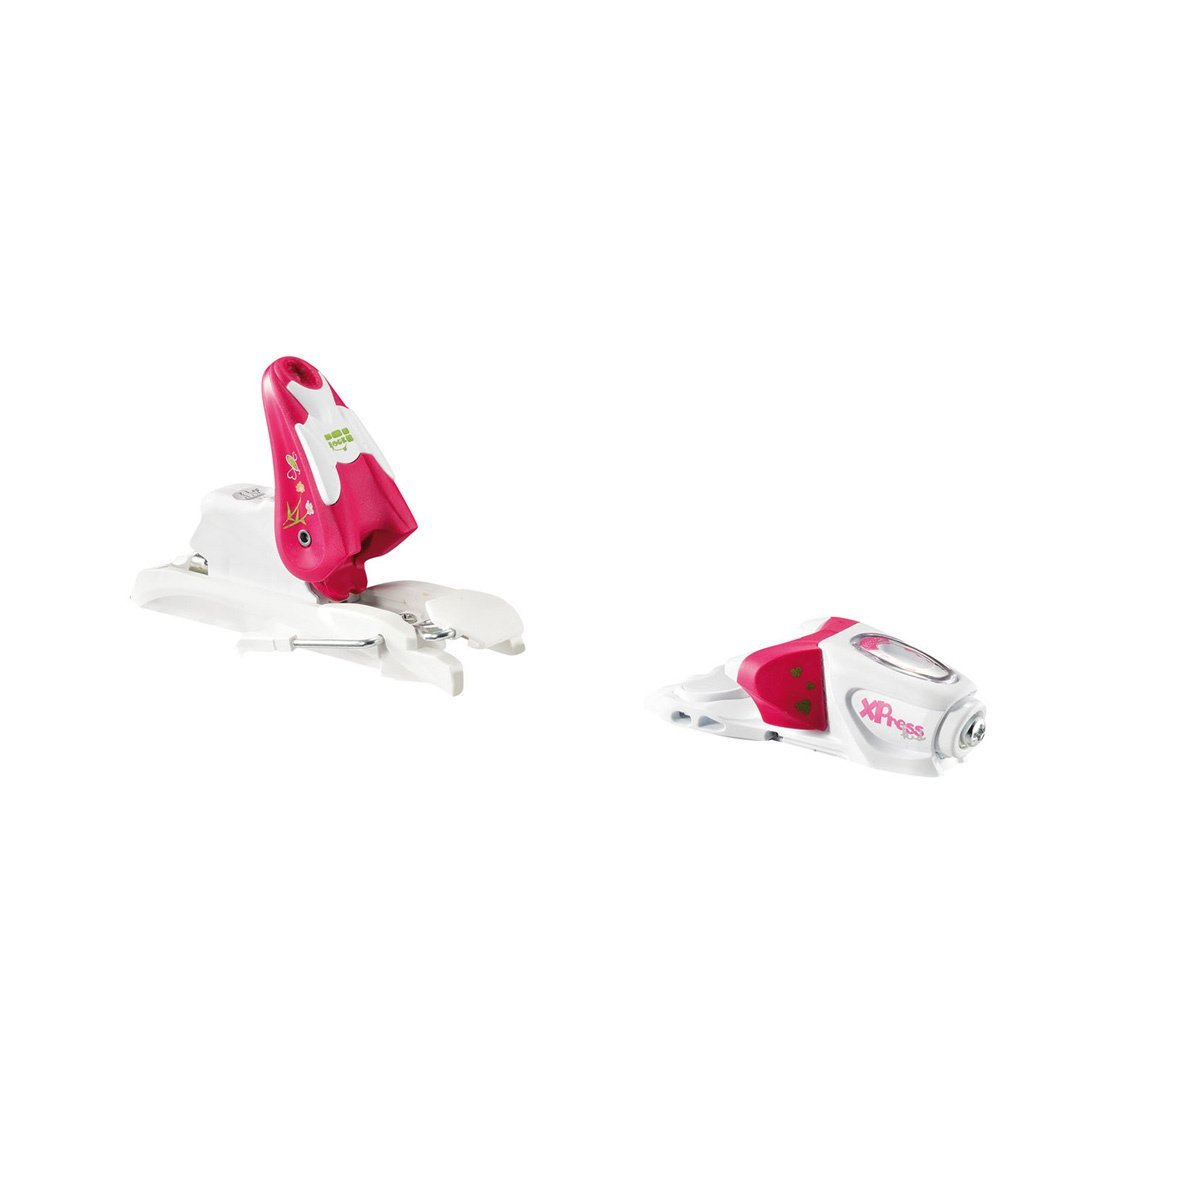 Look Xpress Kid Ski Bindings One Size White/Berry by Look